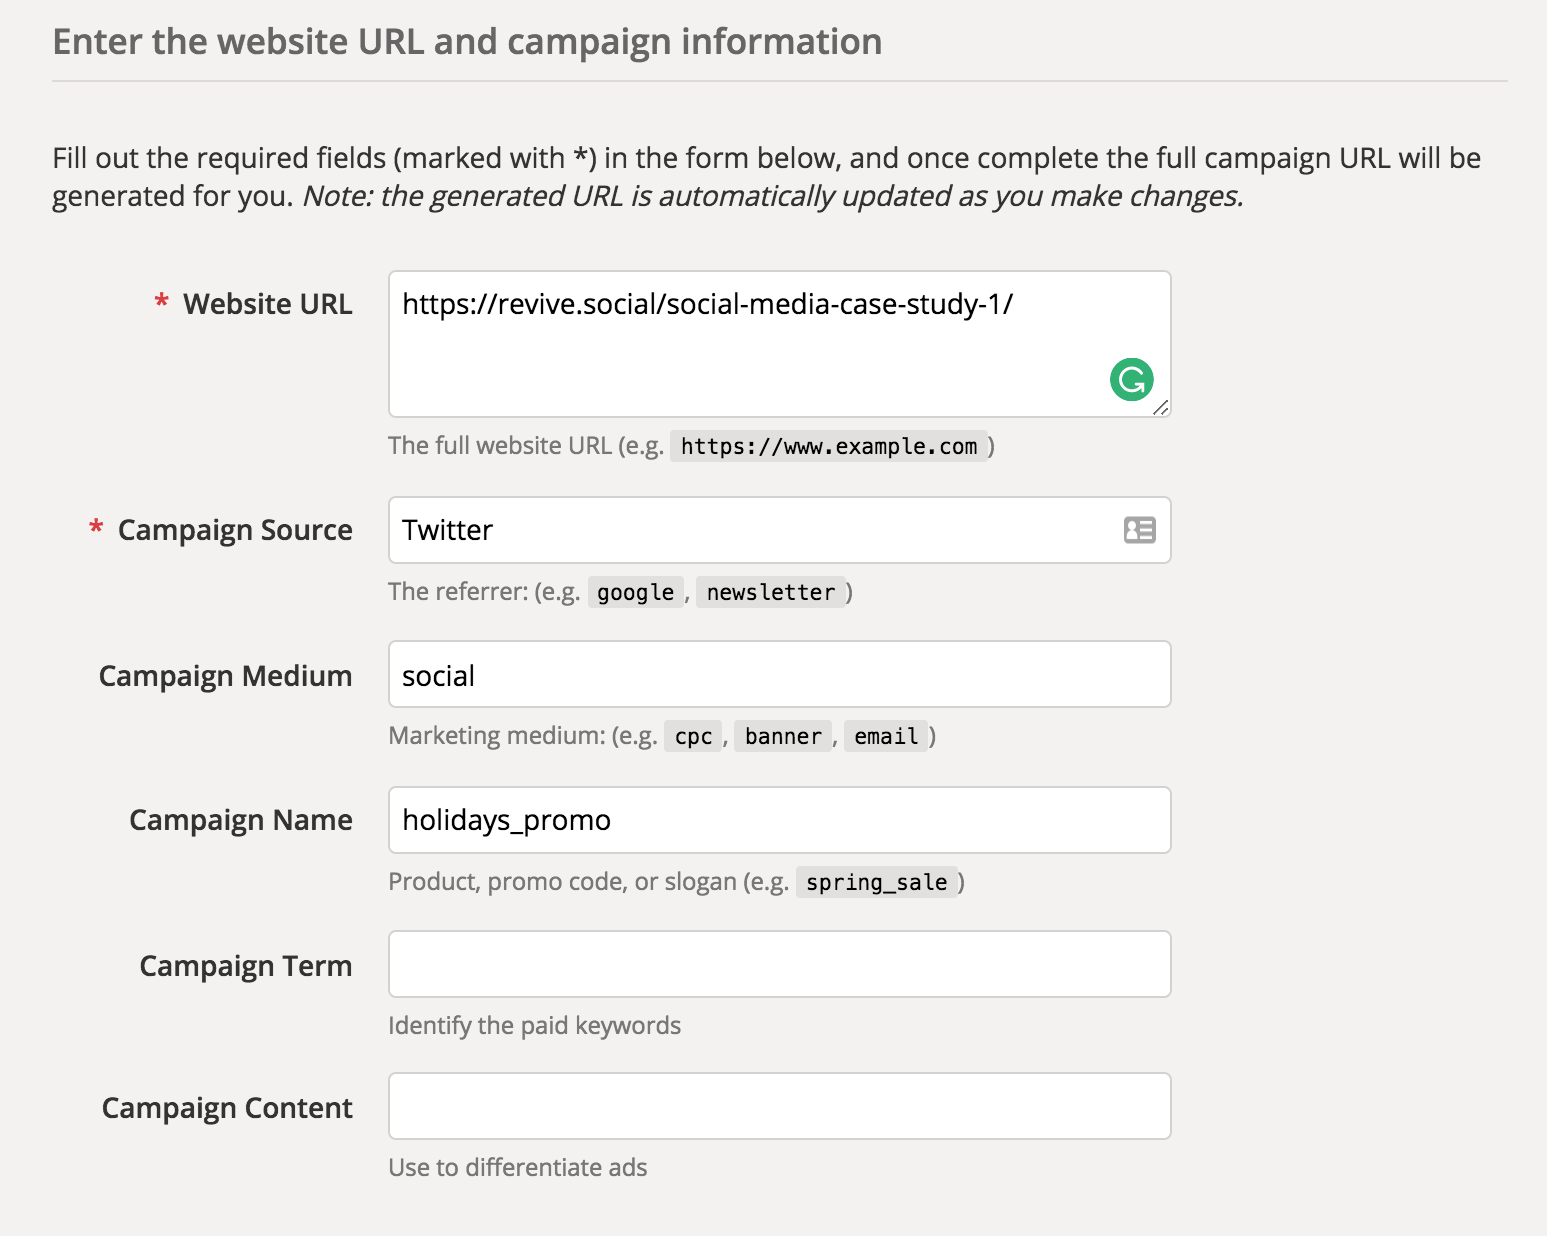 Building a URL with UTM parameters